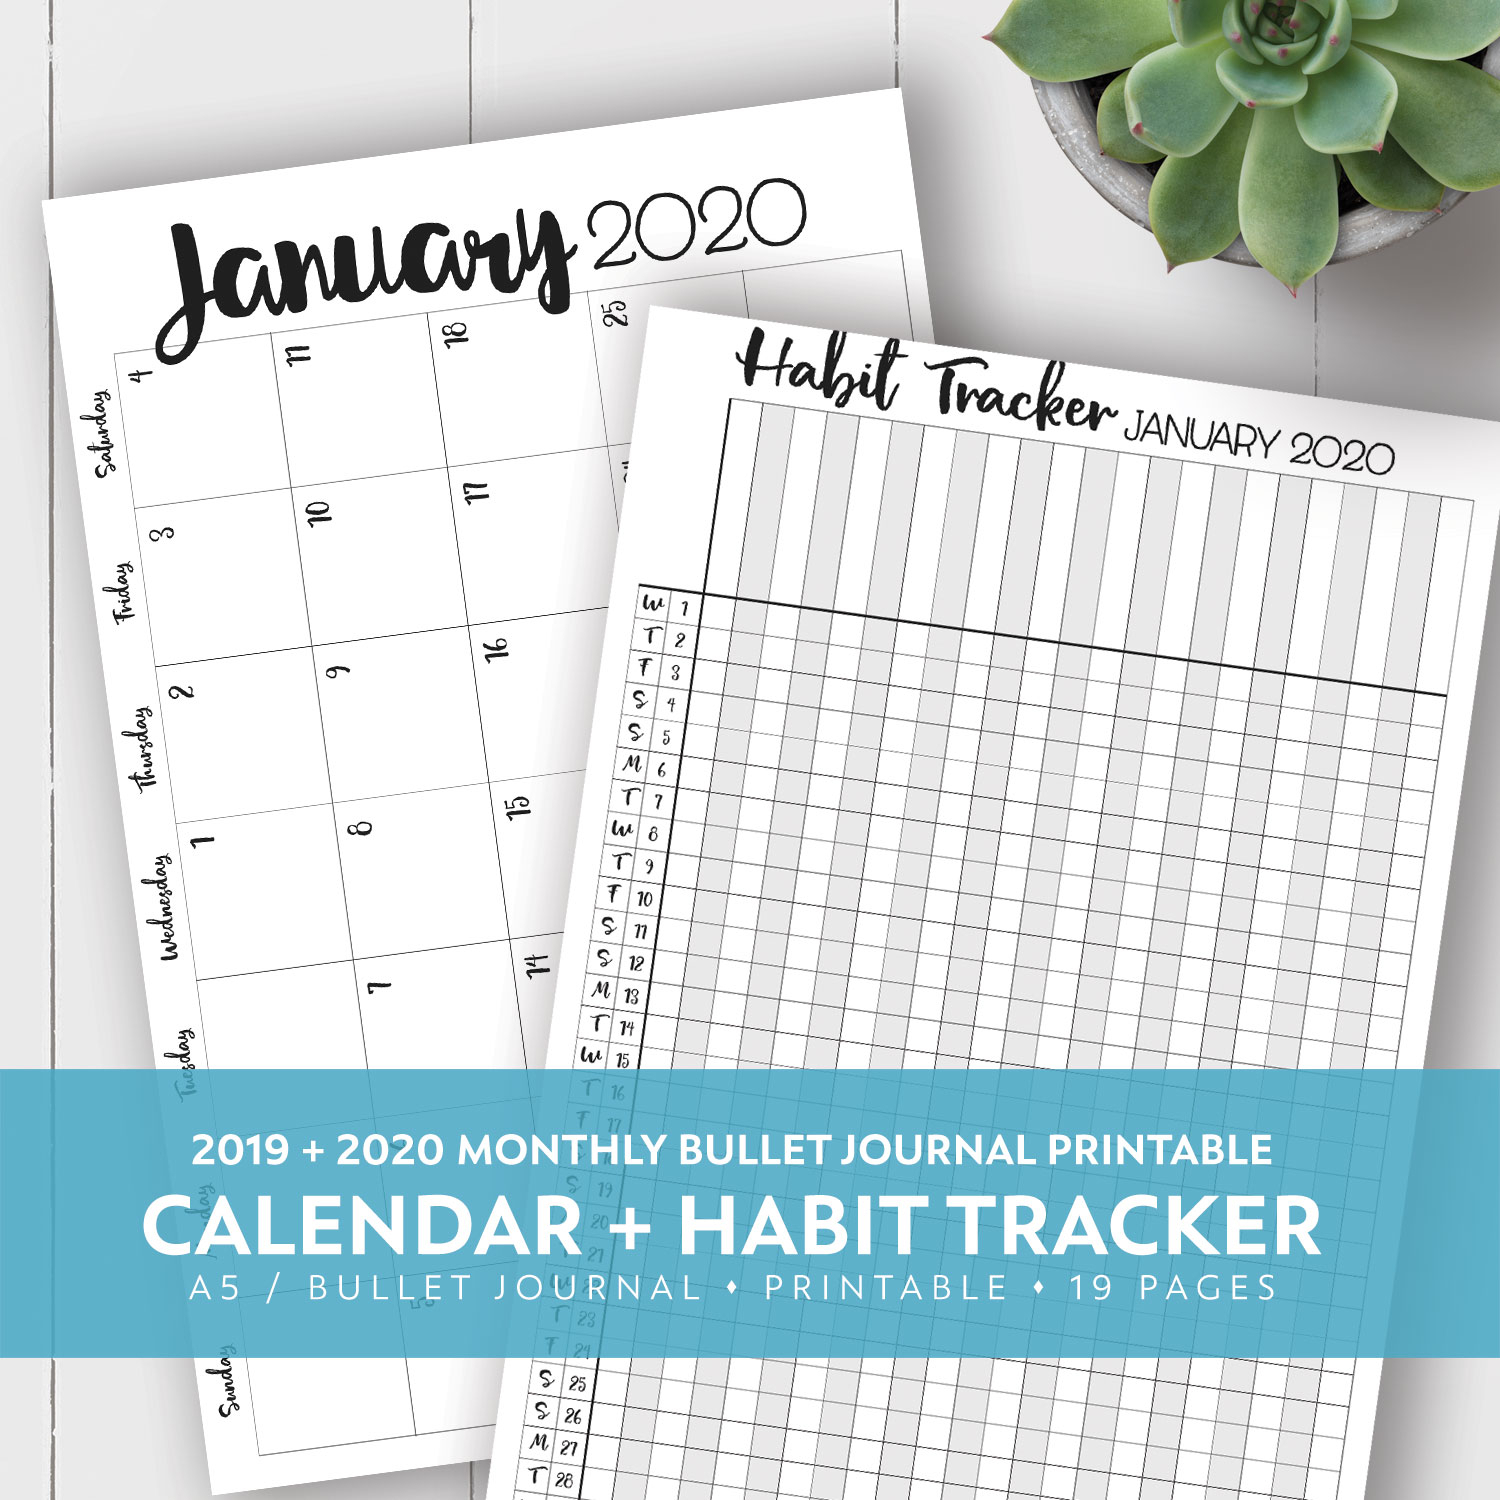 2019 + 2020 Monthly Printable Calendar + Habit Tracker Kit throughout 2020 Free Printable 8.5 X11 Monthly Calendars